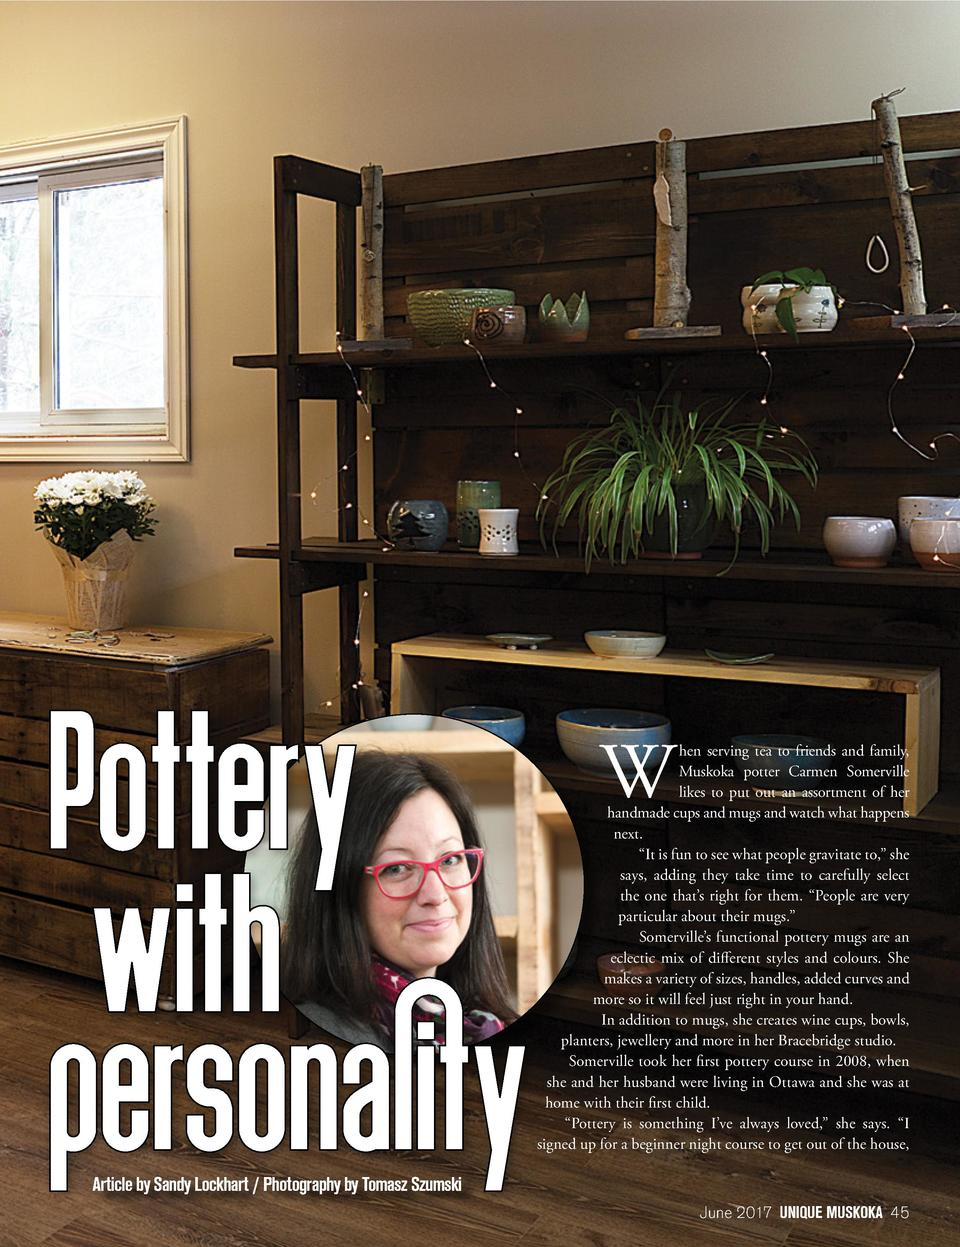 W  hen serving tea to friends and family, Muskoka potter Carmen Somerville likes to put out an assortment of her handmade ...